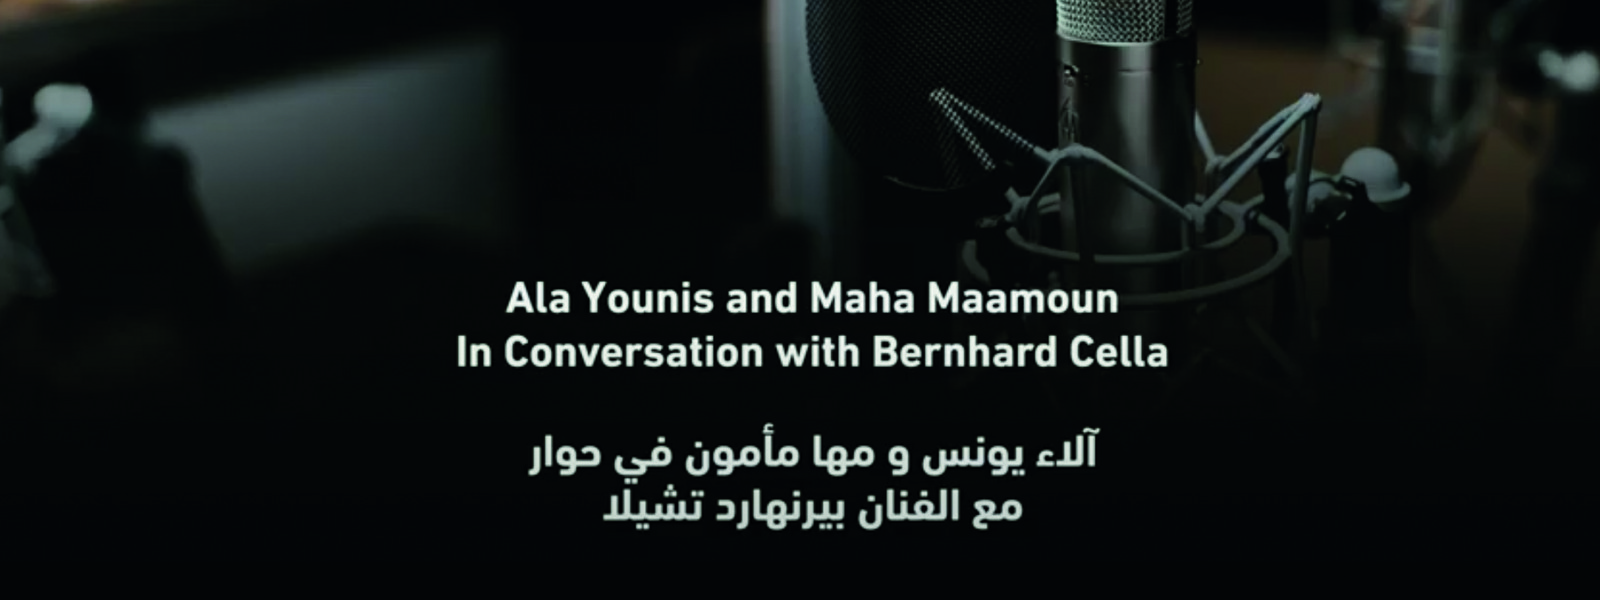 Conversations - Ala Younis and Maha Maamoun: In conversation with Bernhard Cella